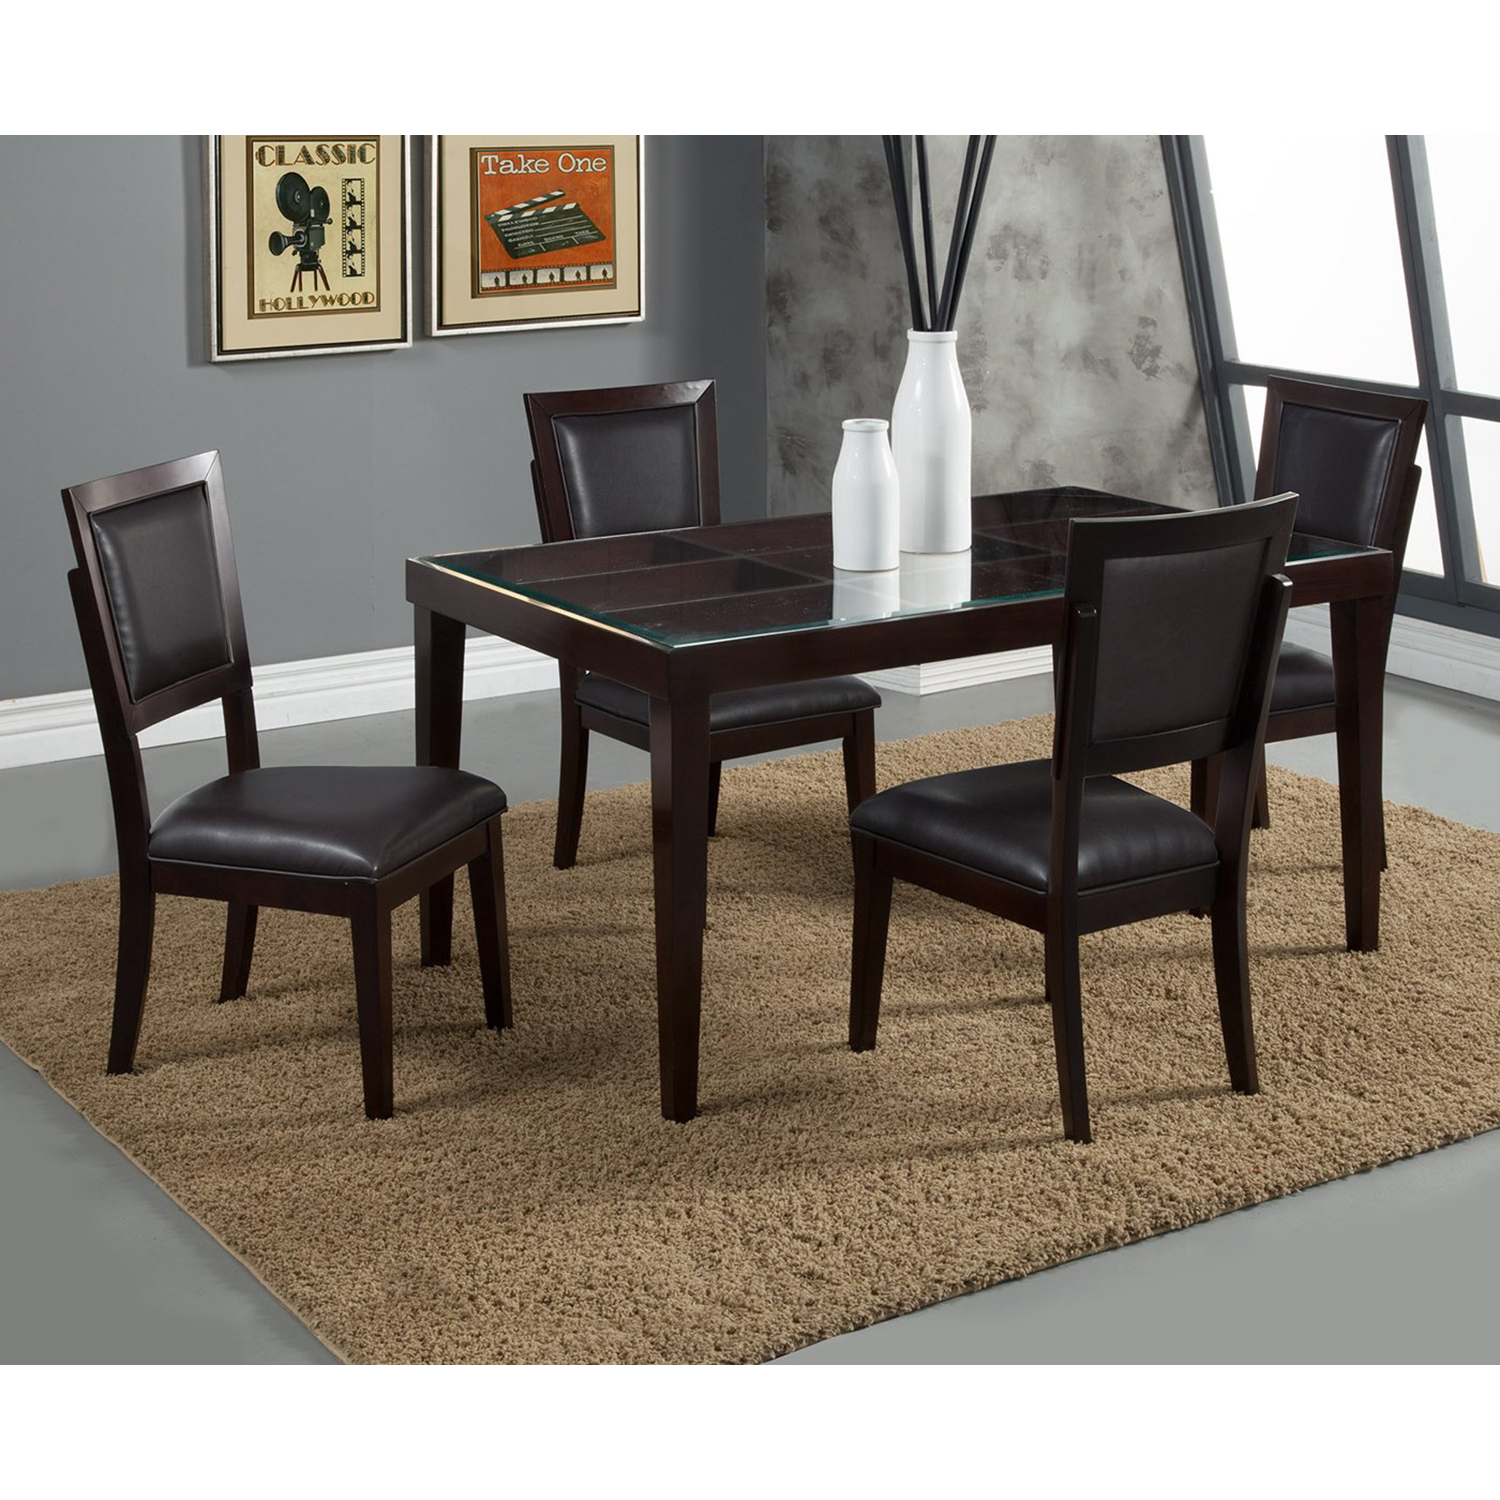 Midtown Side Chair - Espresso Frame, Black Upholstery - ALP-581-02B